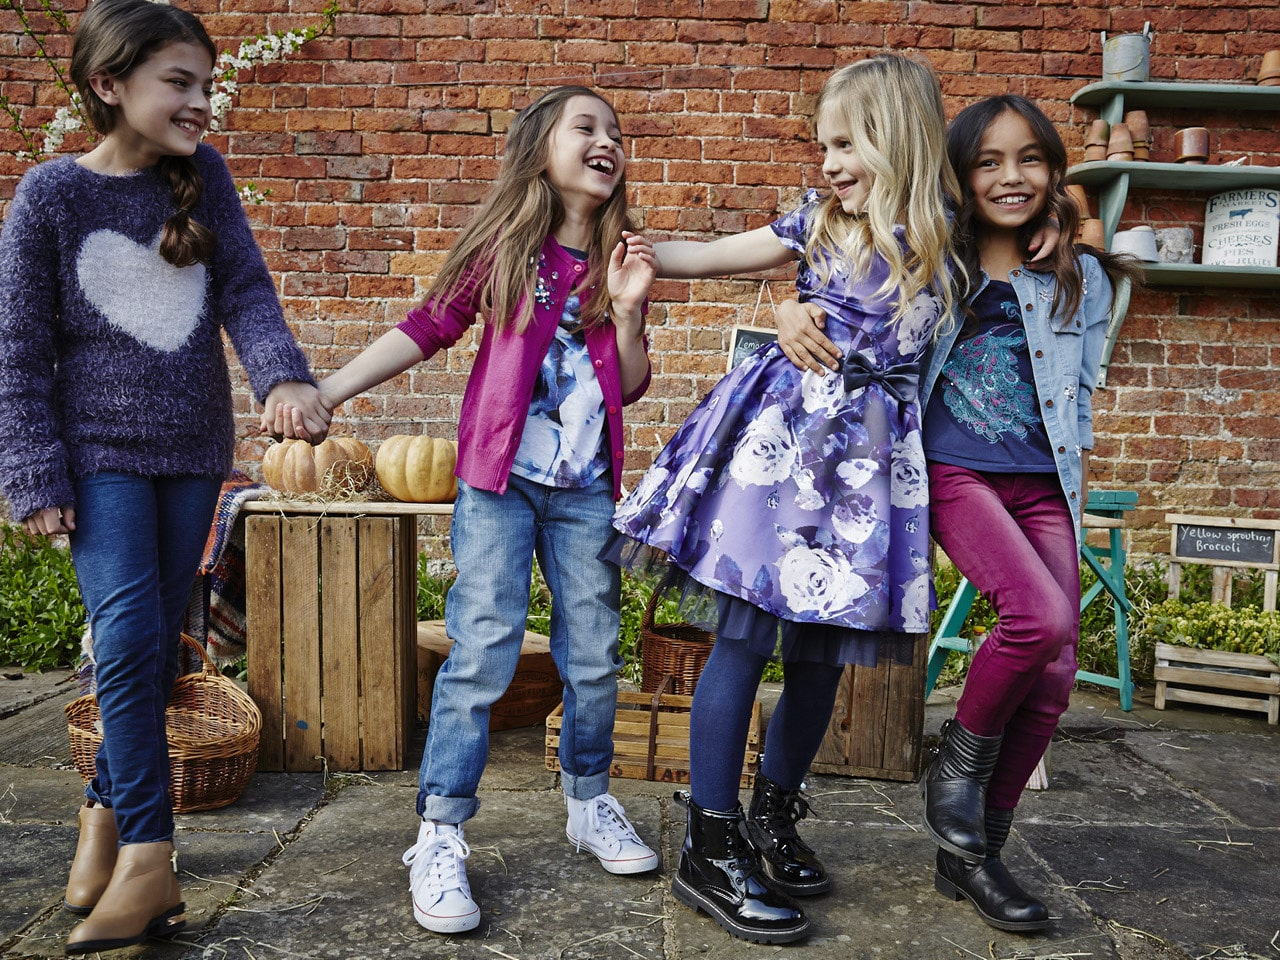 argos-kids-fashion-stylist-hair-makeup-manchester6